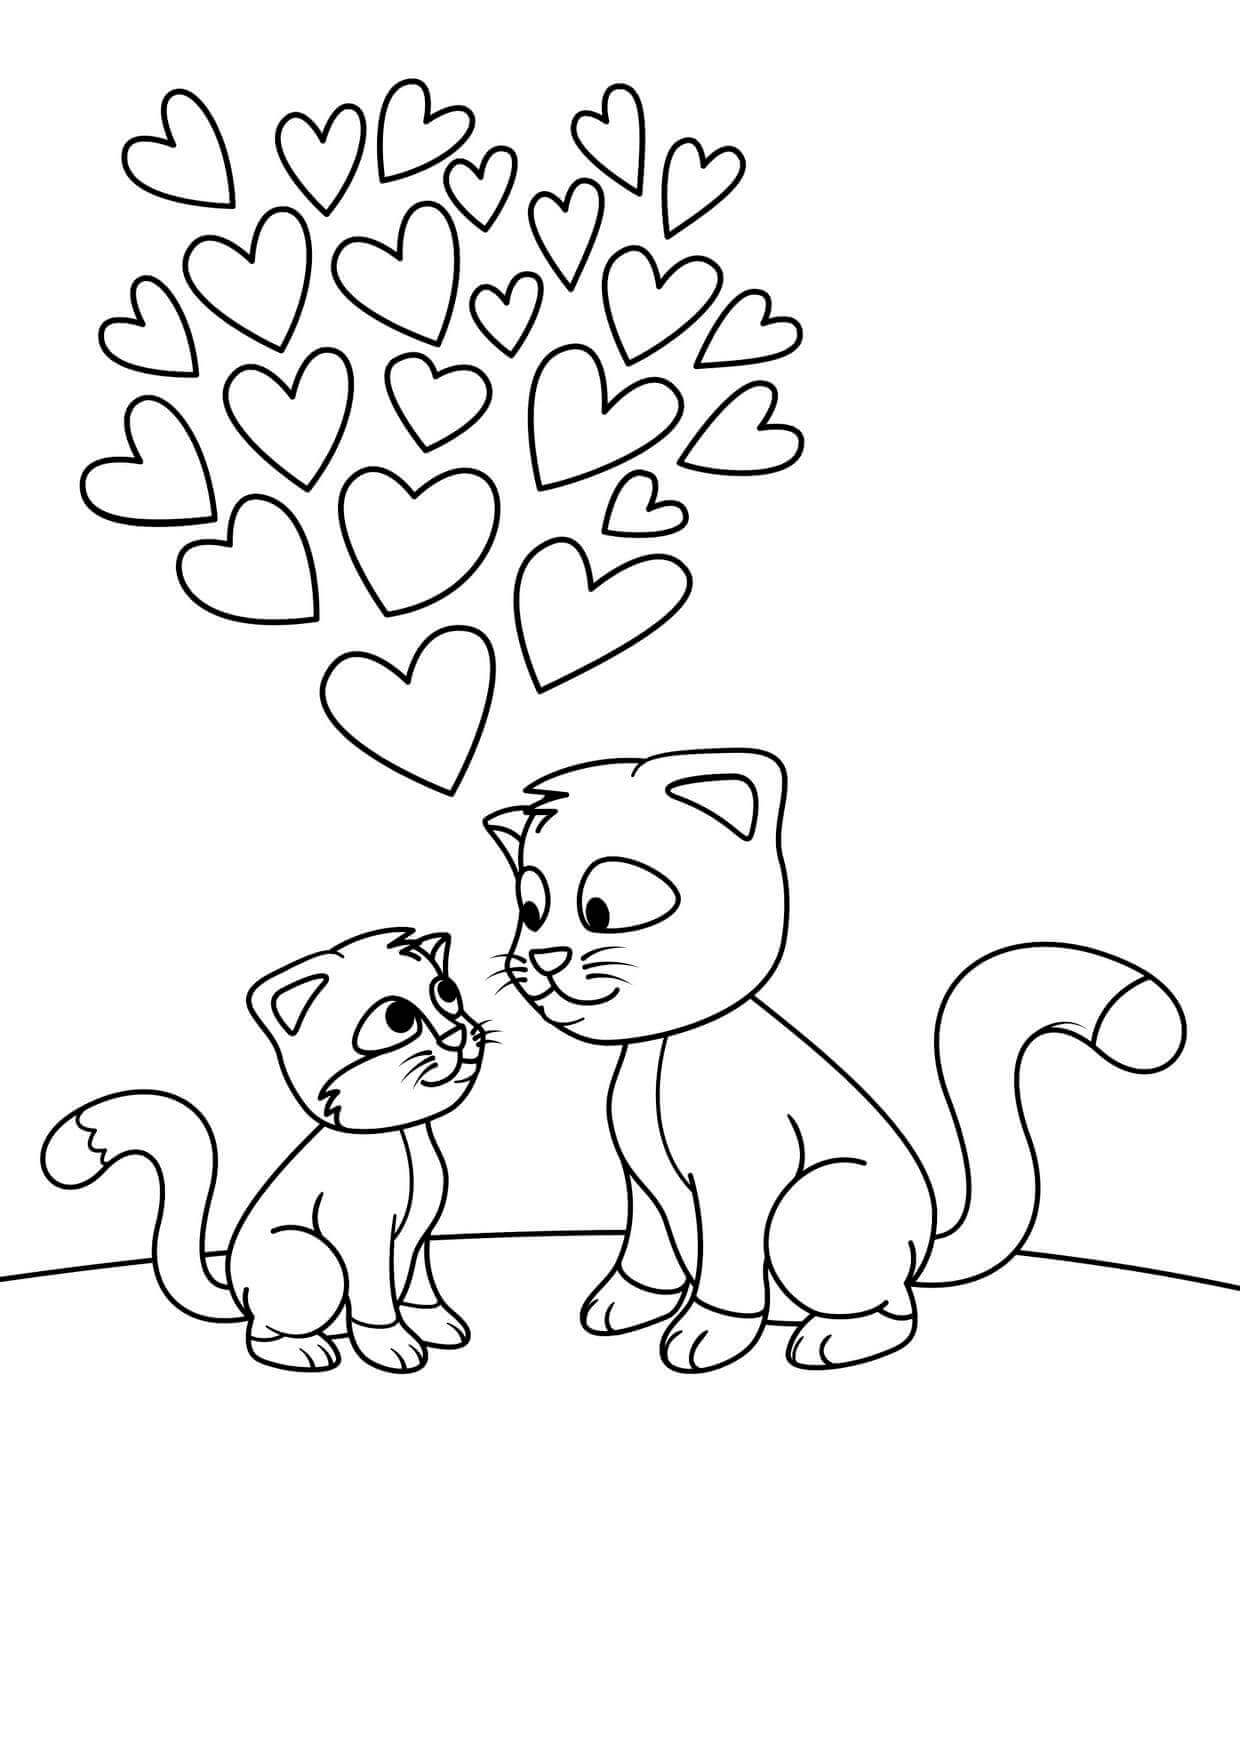 coloring printouts for girls free printable coloring pages for girls for girls coloring printouts